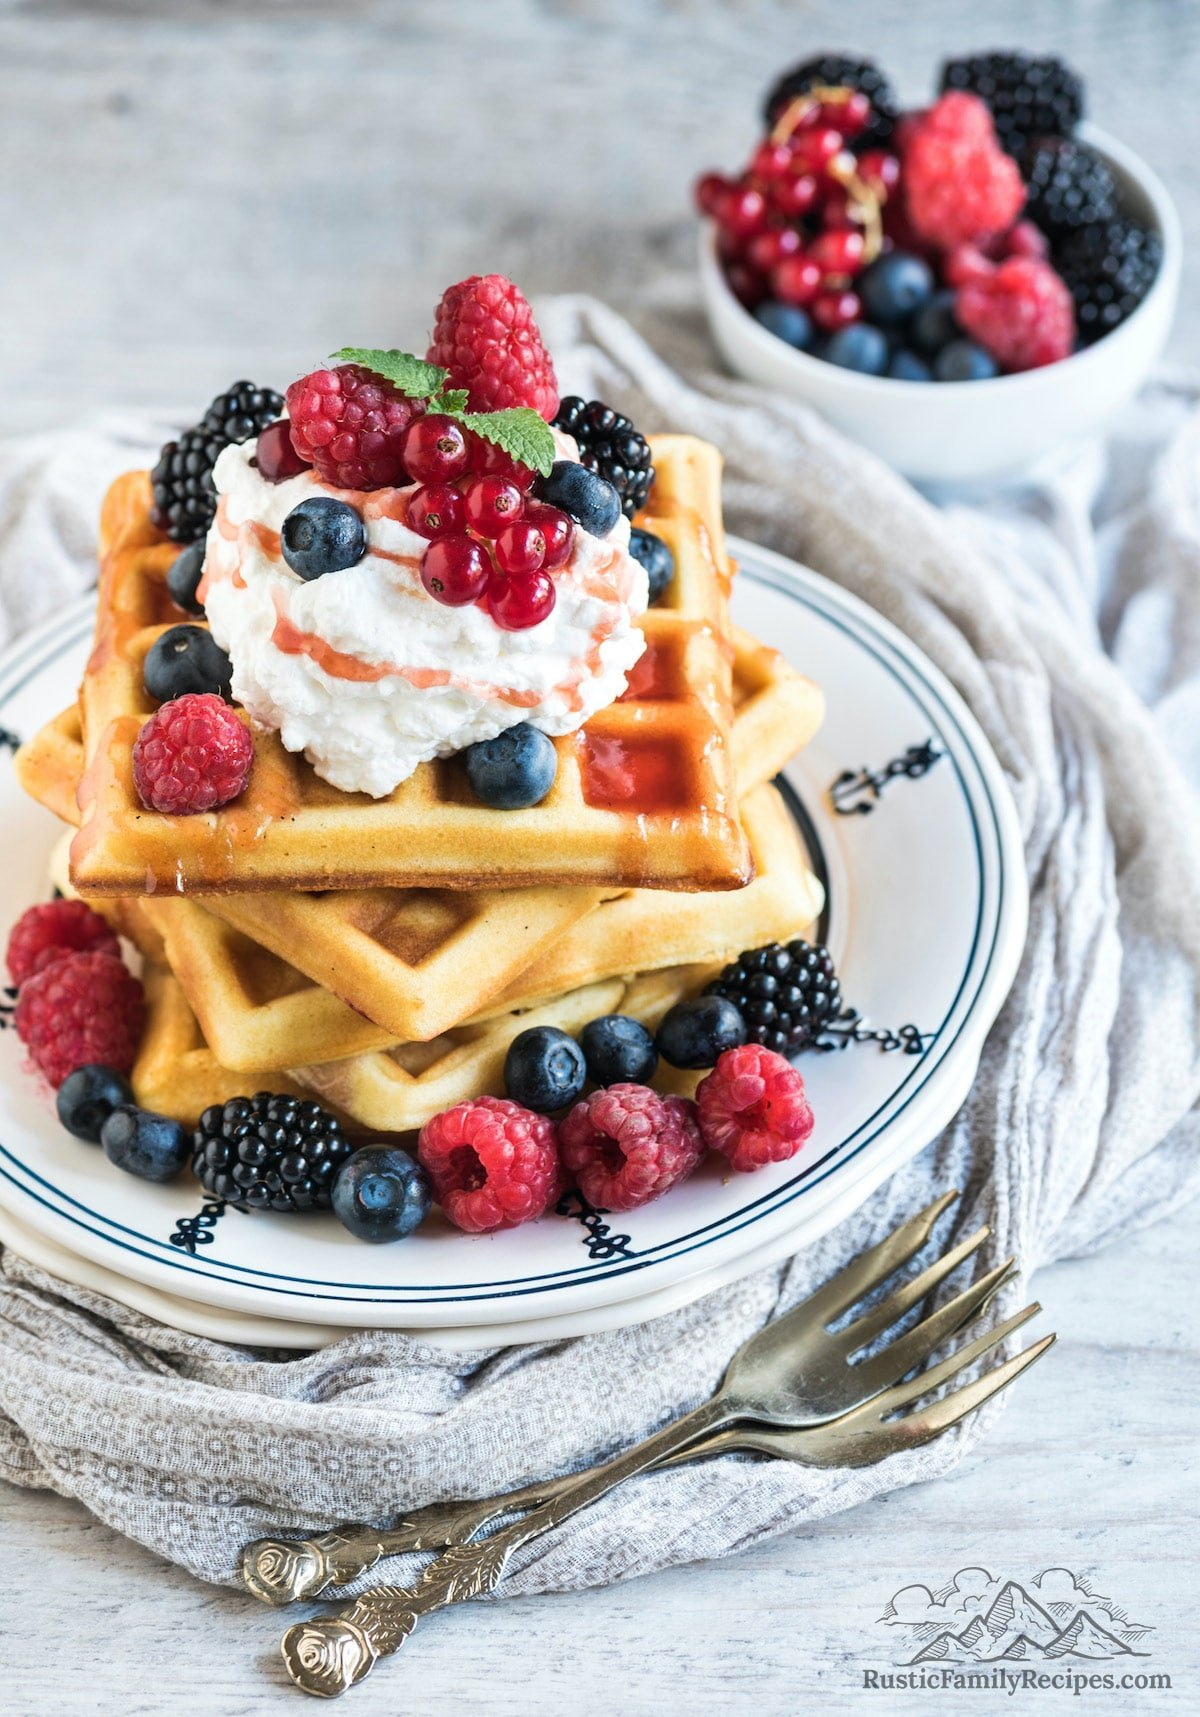 A plate with 3 sourdough waffles topped with berries and cream